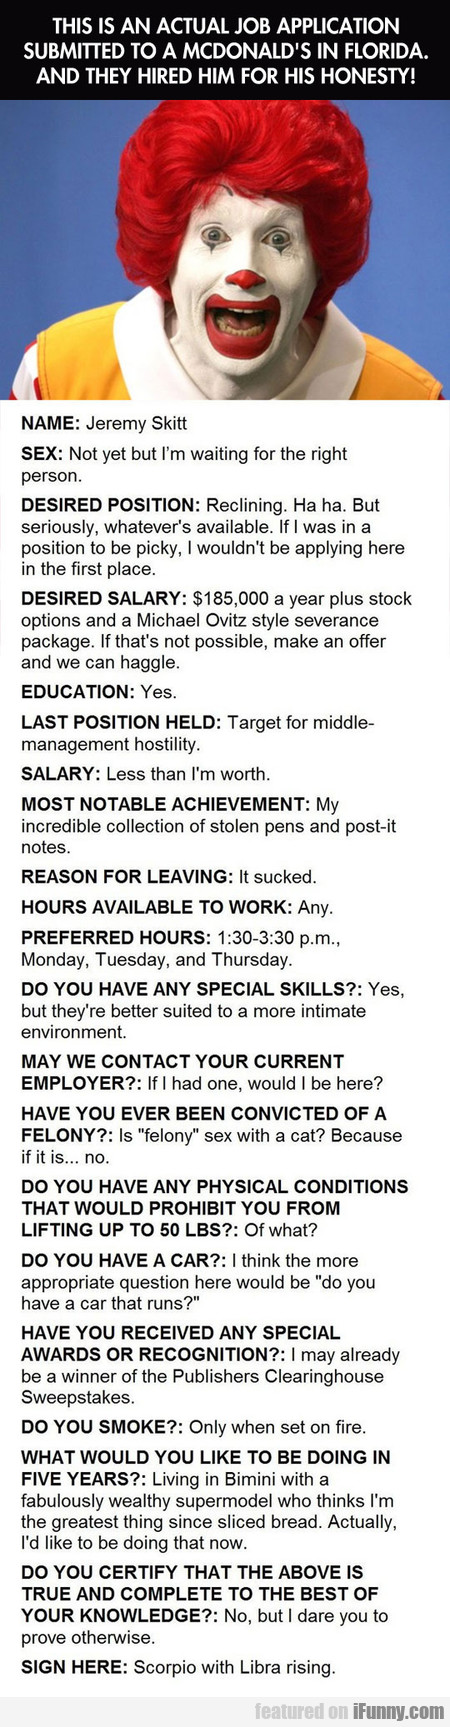 This Is An Actual Job Application In Florida